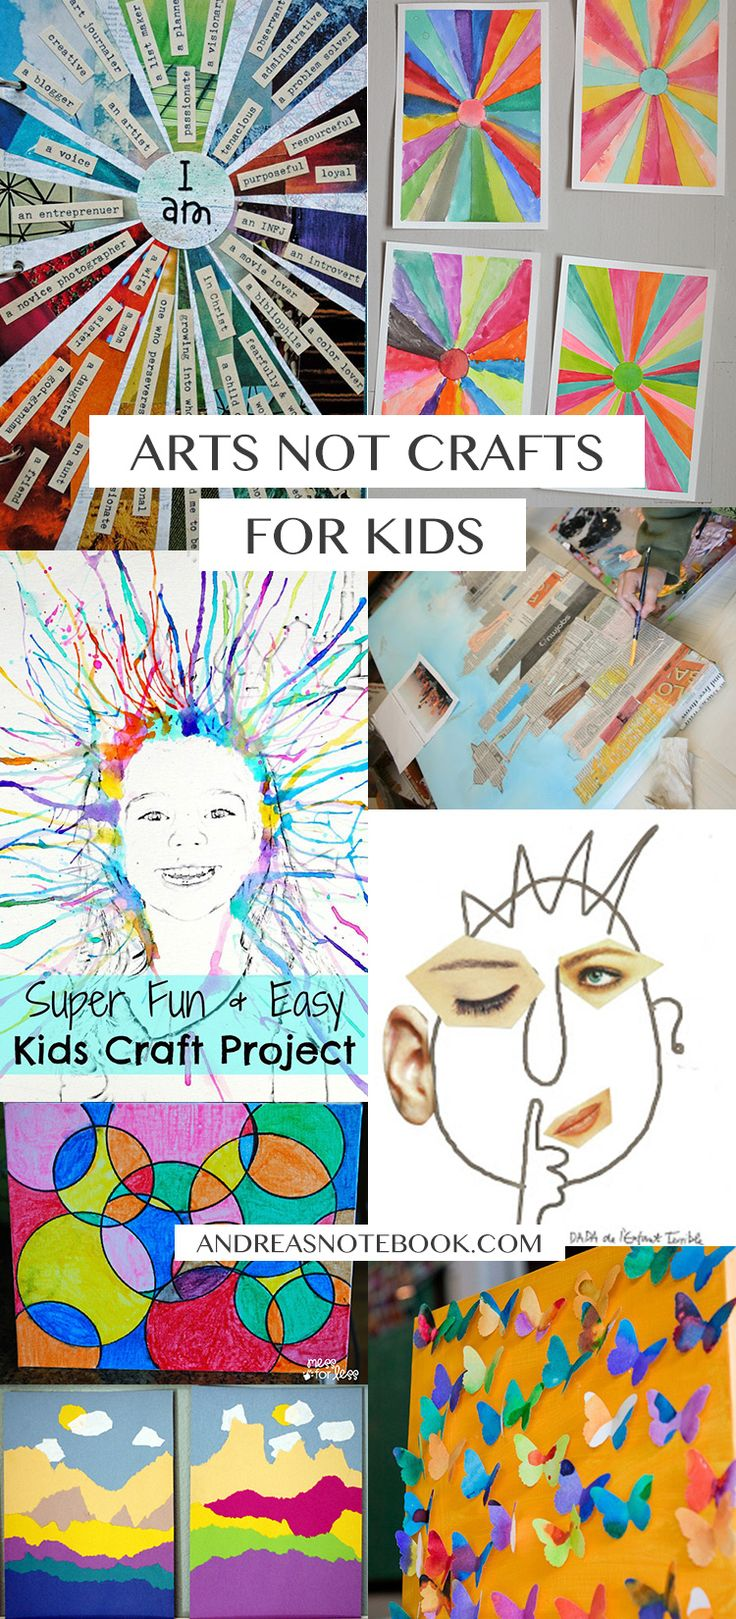 Tired of kid crafts? Introduce them to the arts! Check out this inspiration!